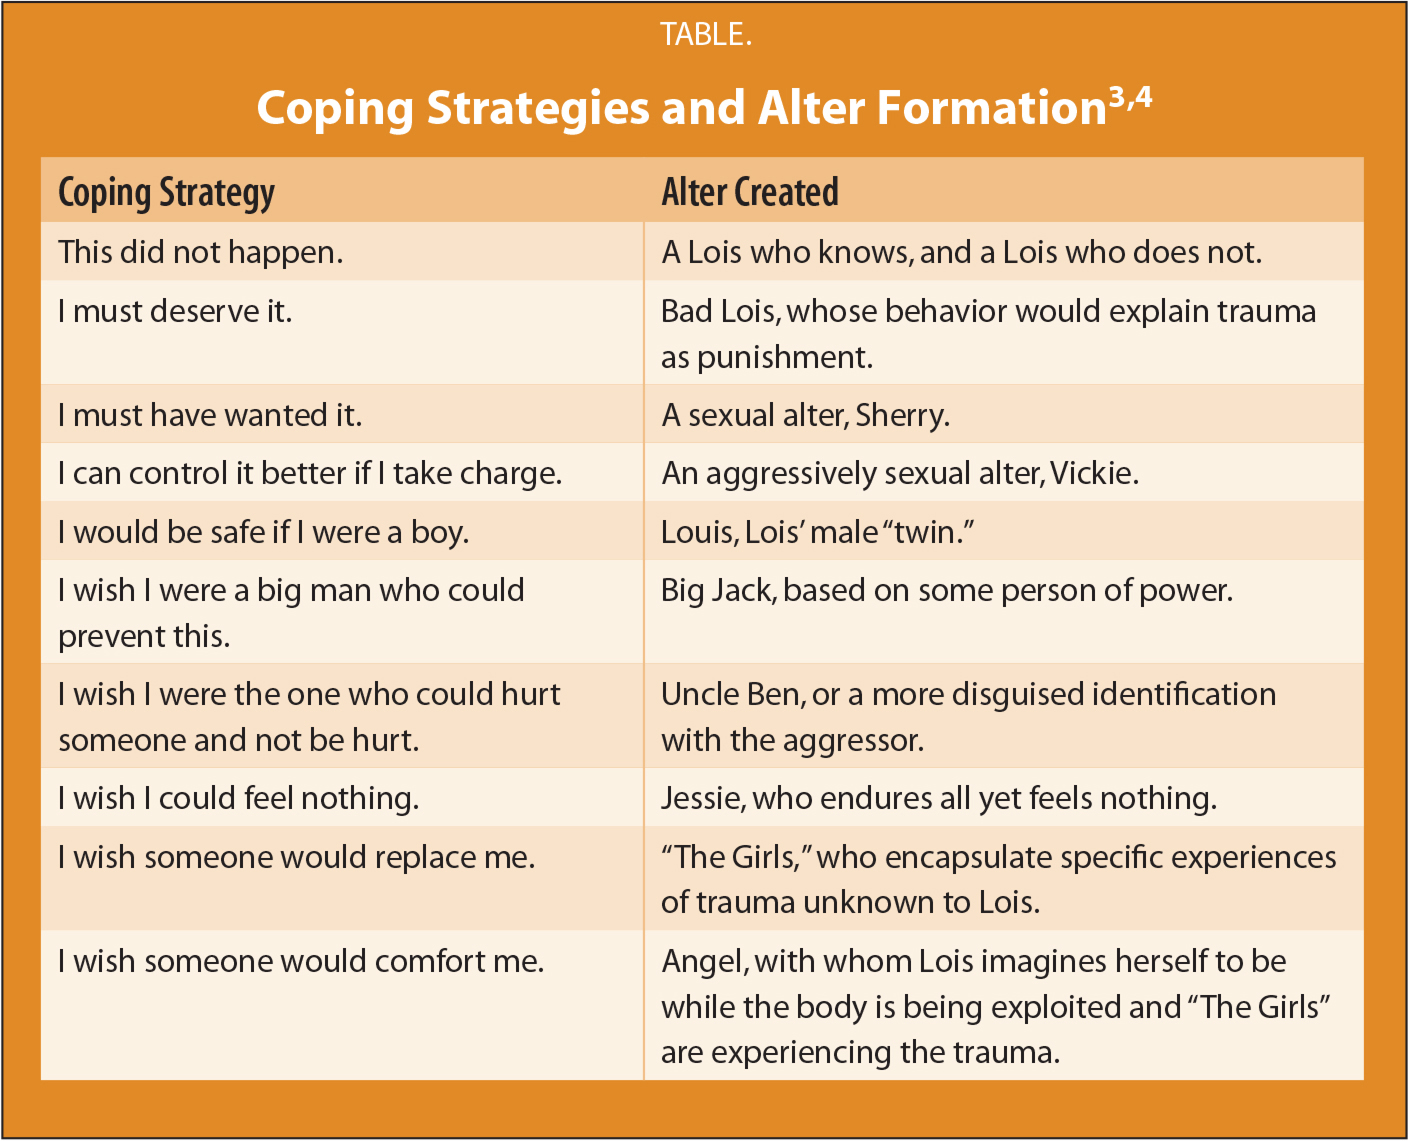 Coping Strategies and Alter Formation3,4